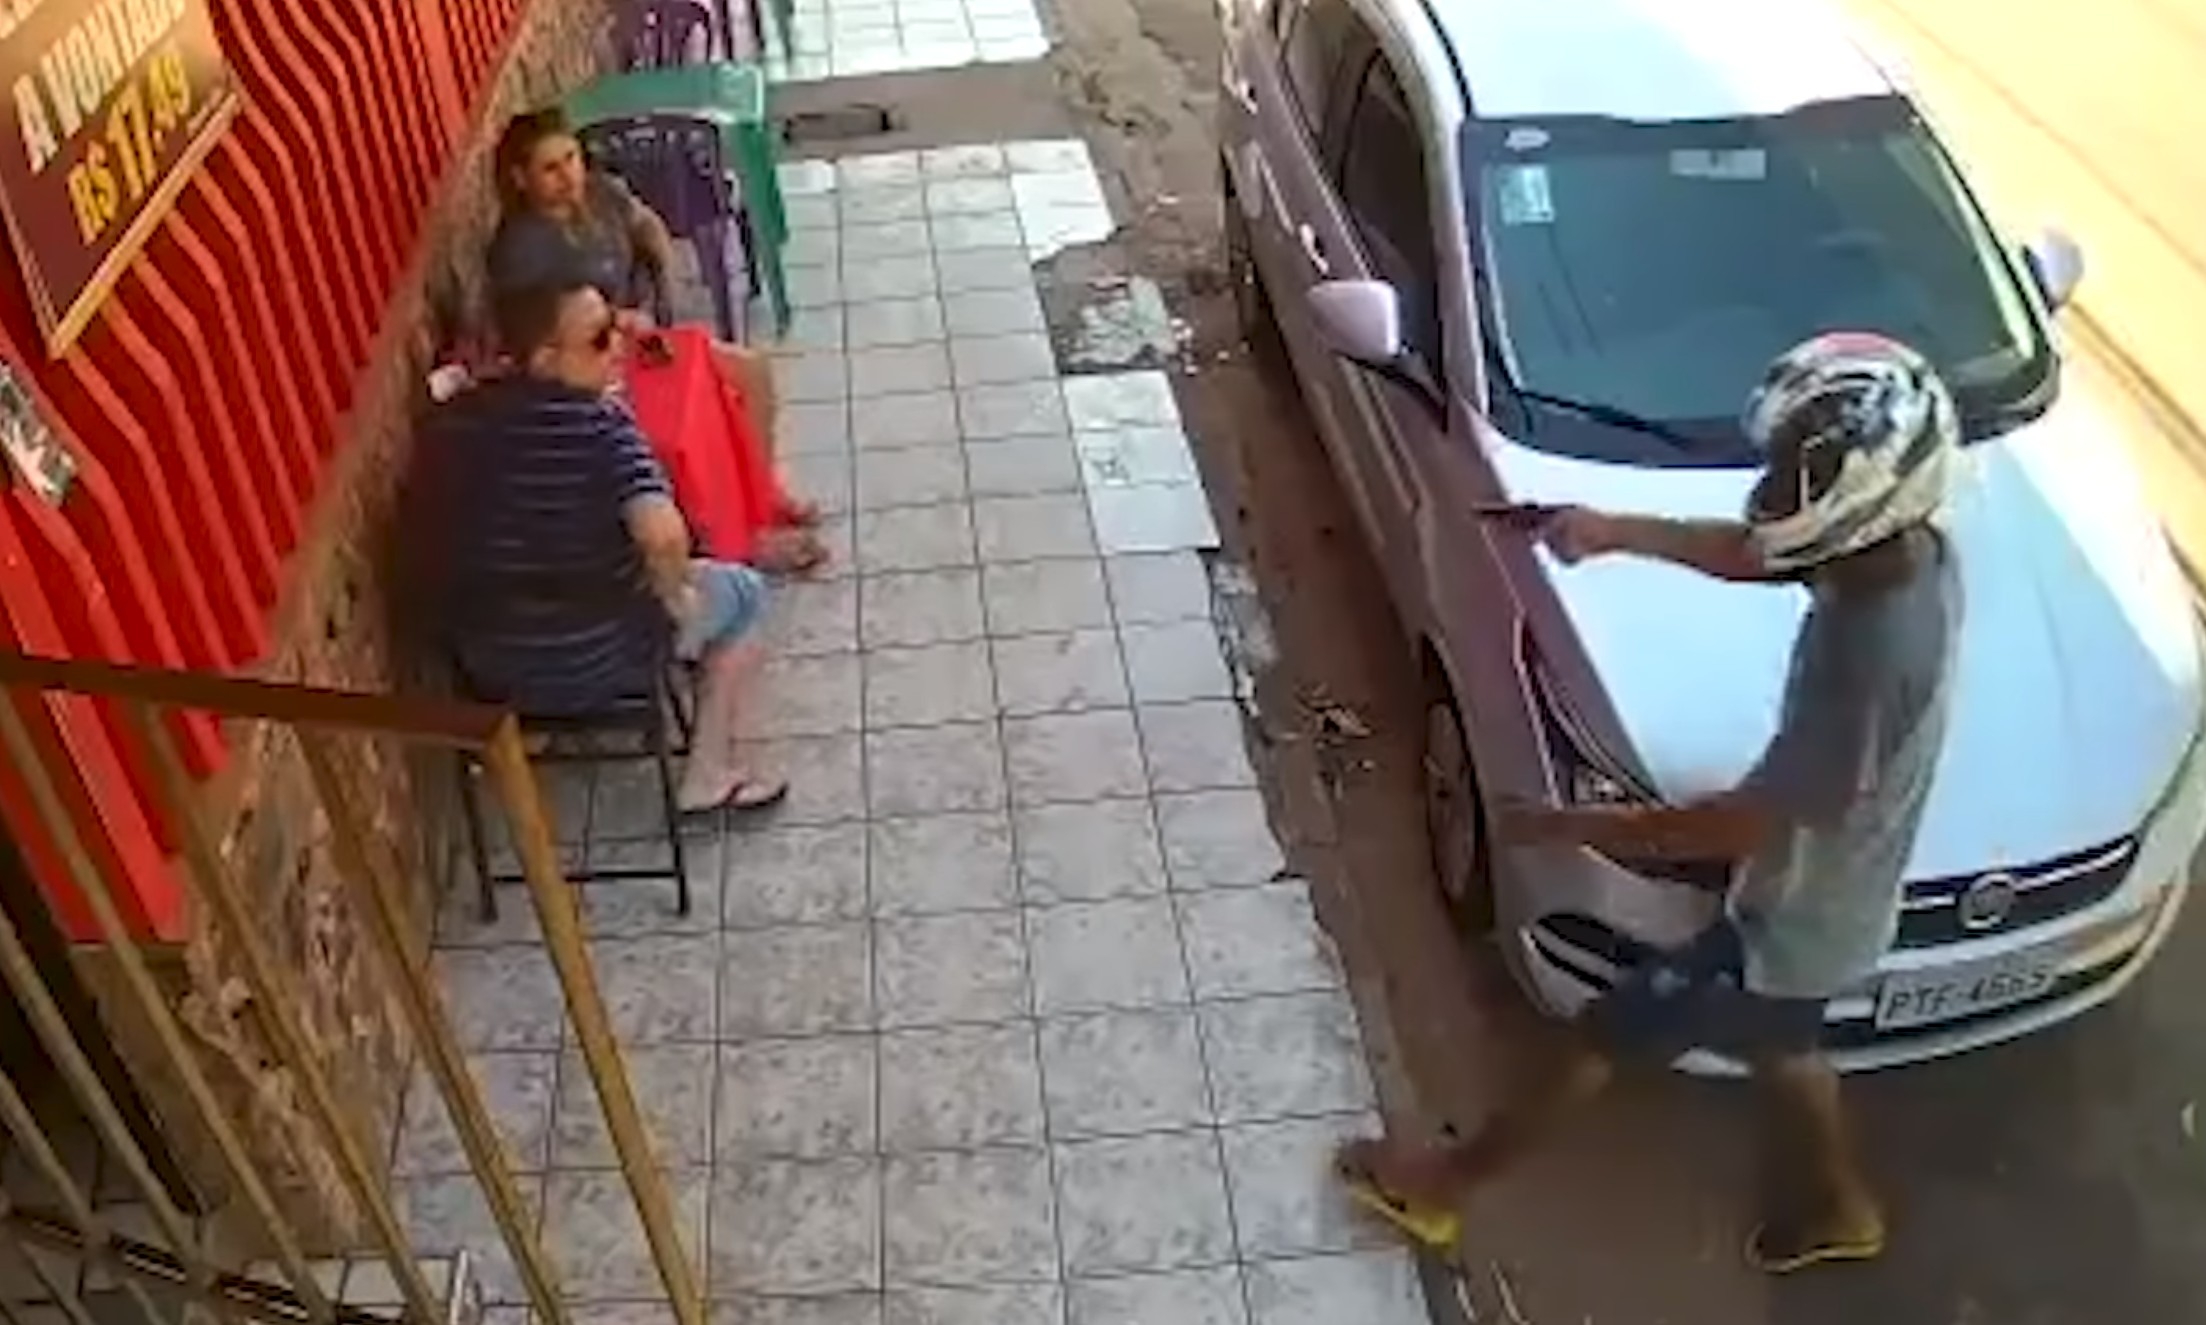 [VIDEO] Armed Criminal Is No Match For His Two Targets